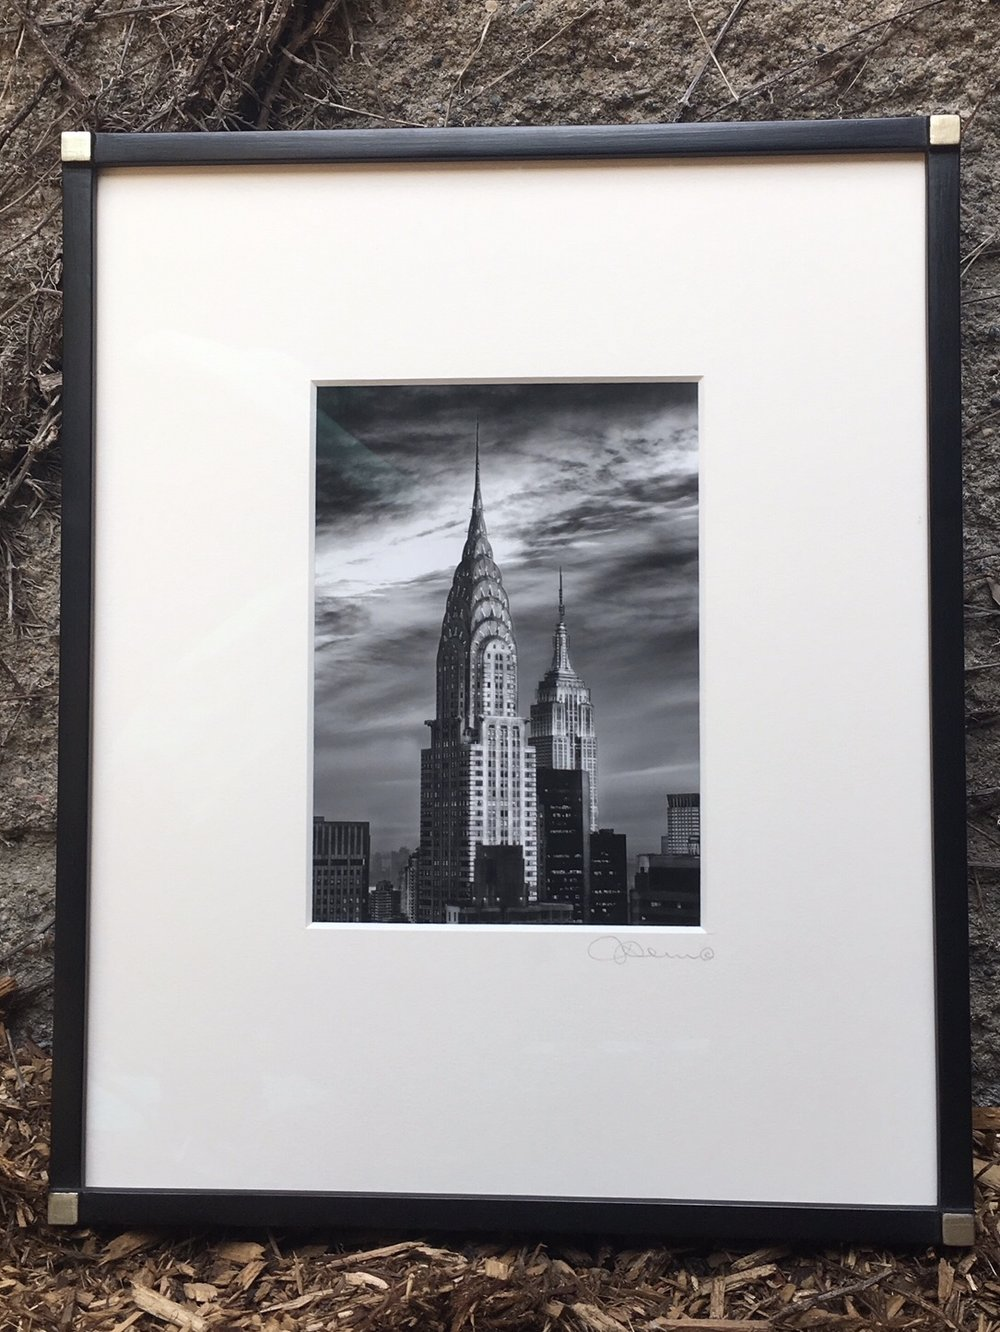 NYC photograph framed in black with white gold Hick's corners.